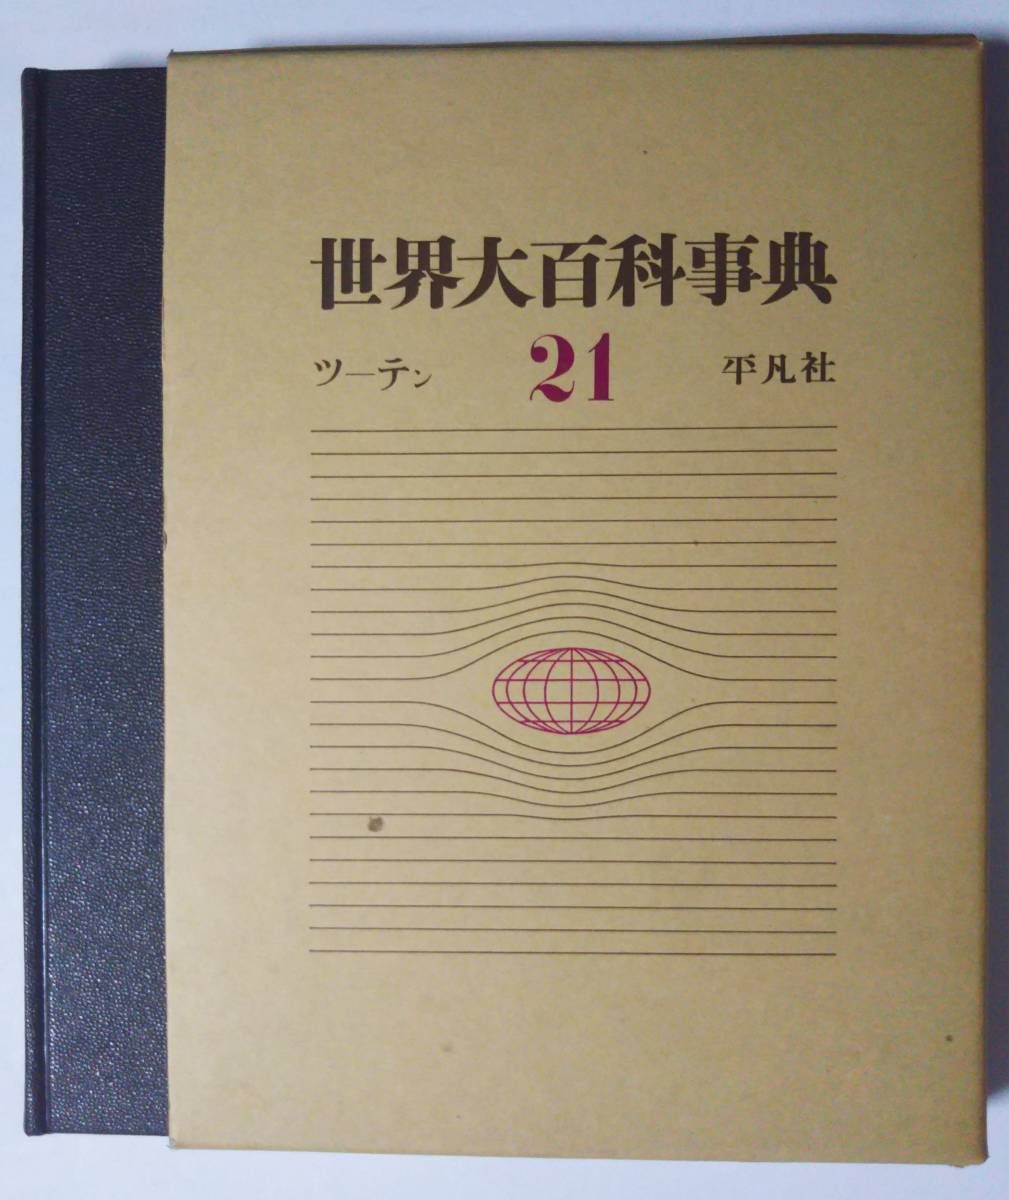 Heibonsha World Encyclopedia 21 (Tuten) 1972 first edition published Hako there / beauty item Size: 22.5 × 31 cm about 2 kg